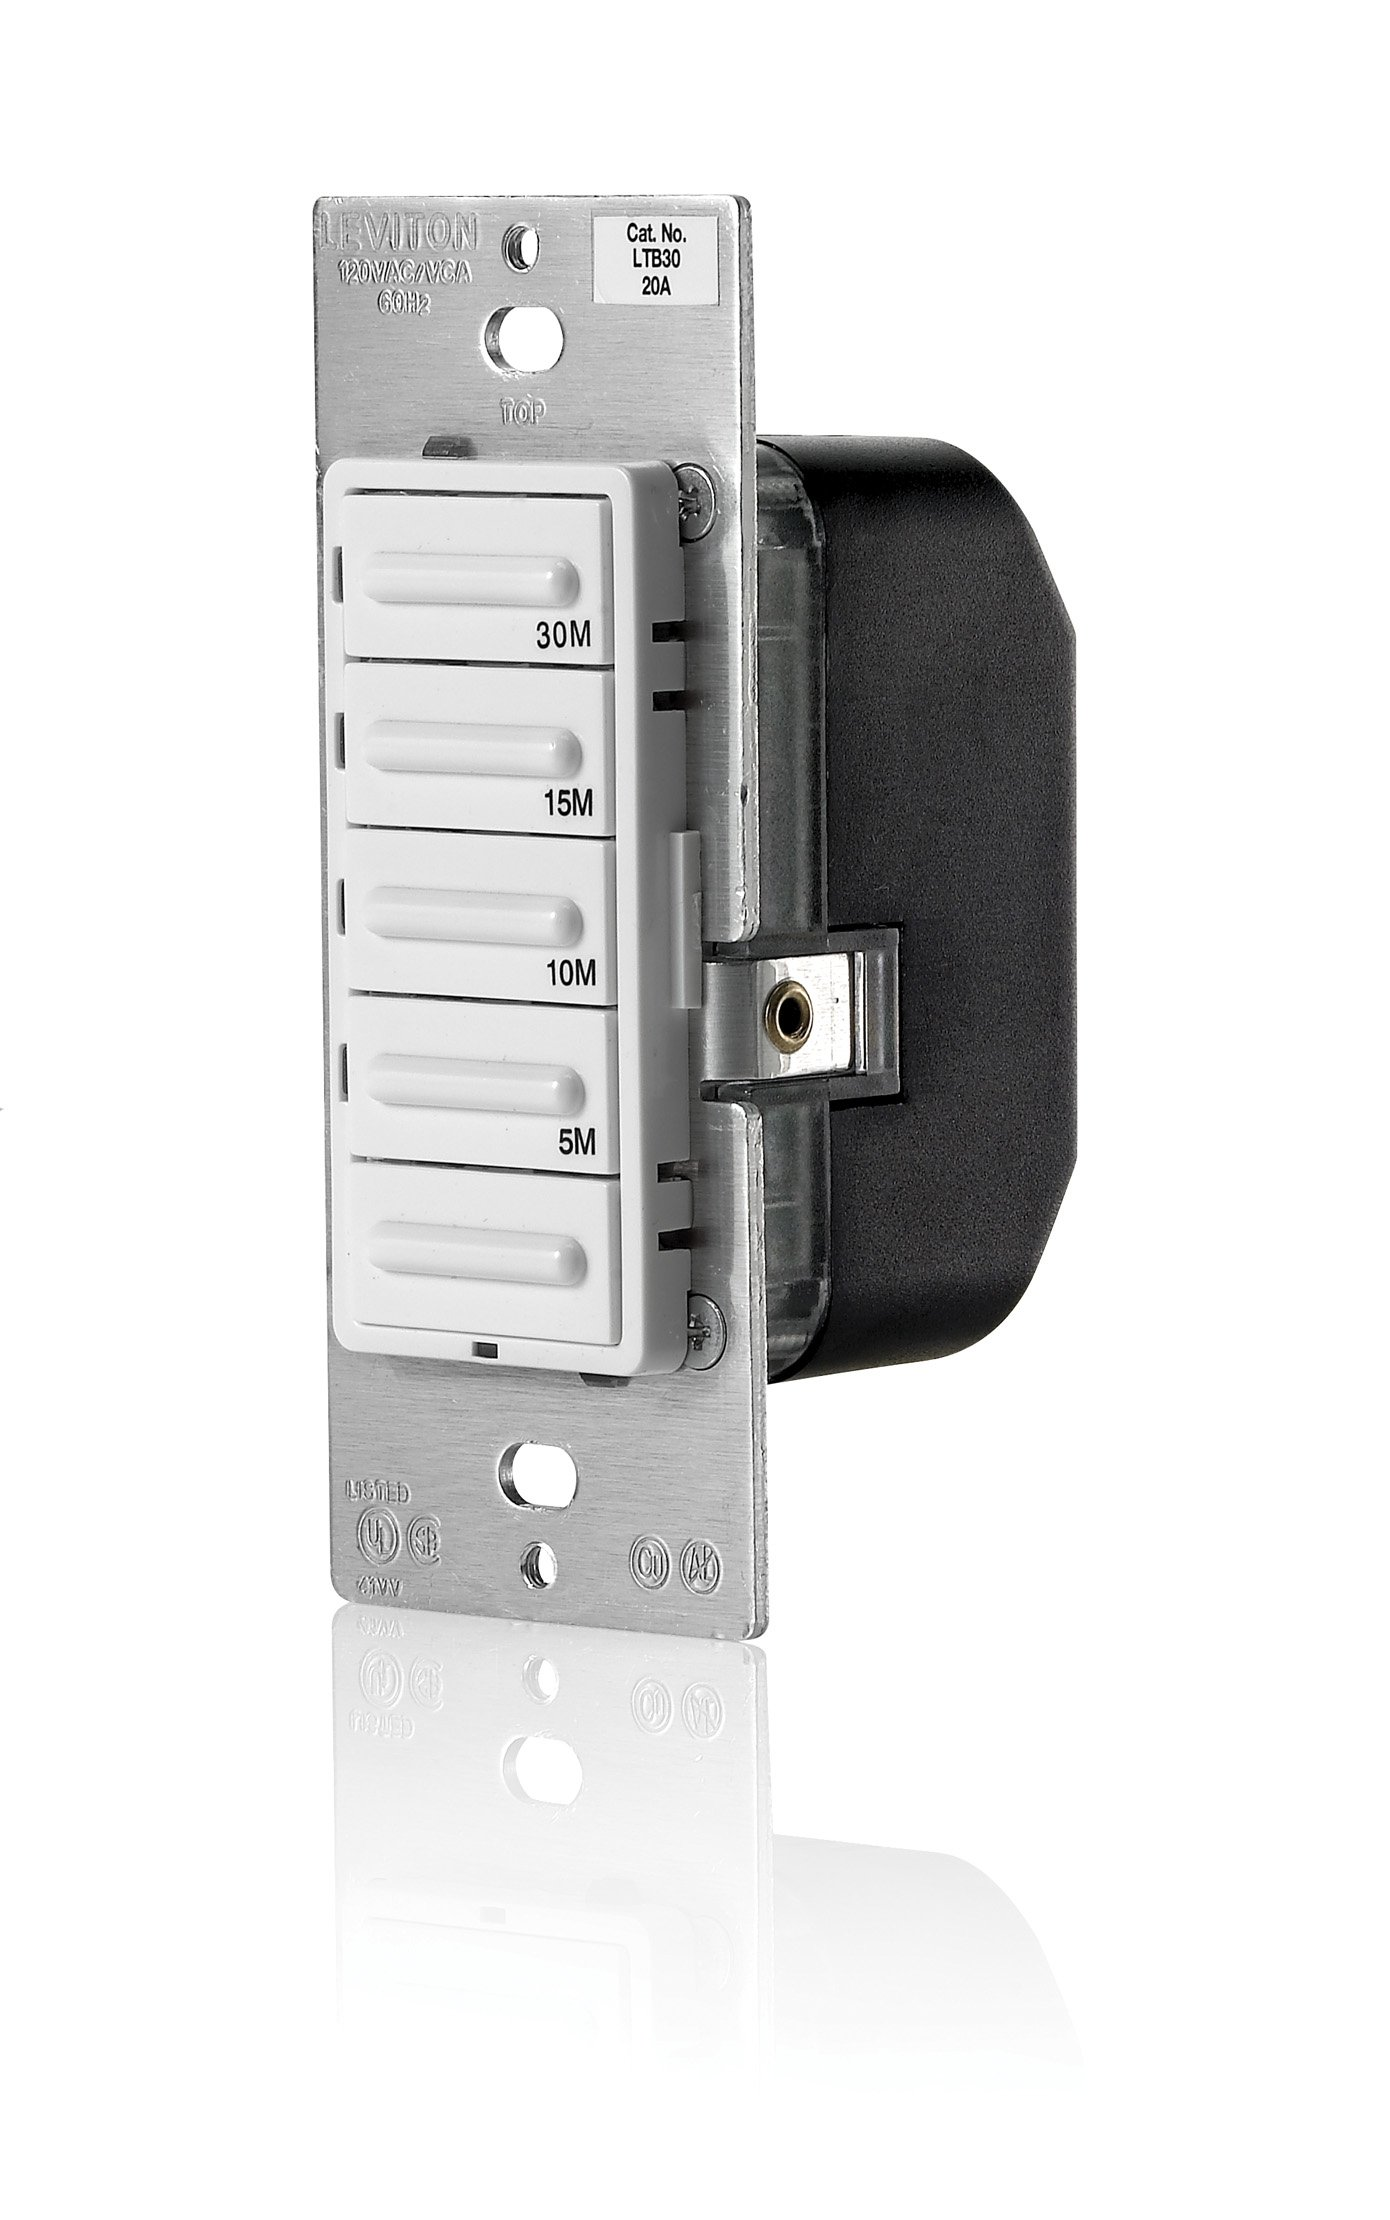 Leviton LTB30-1LZ Decora 1800W Incandescent/20A Resistive-Inductive 1HP Preset 5-10-15-30 Minute Countdown Timer Switch, White/Ivory/Light Almond